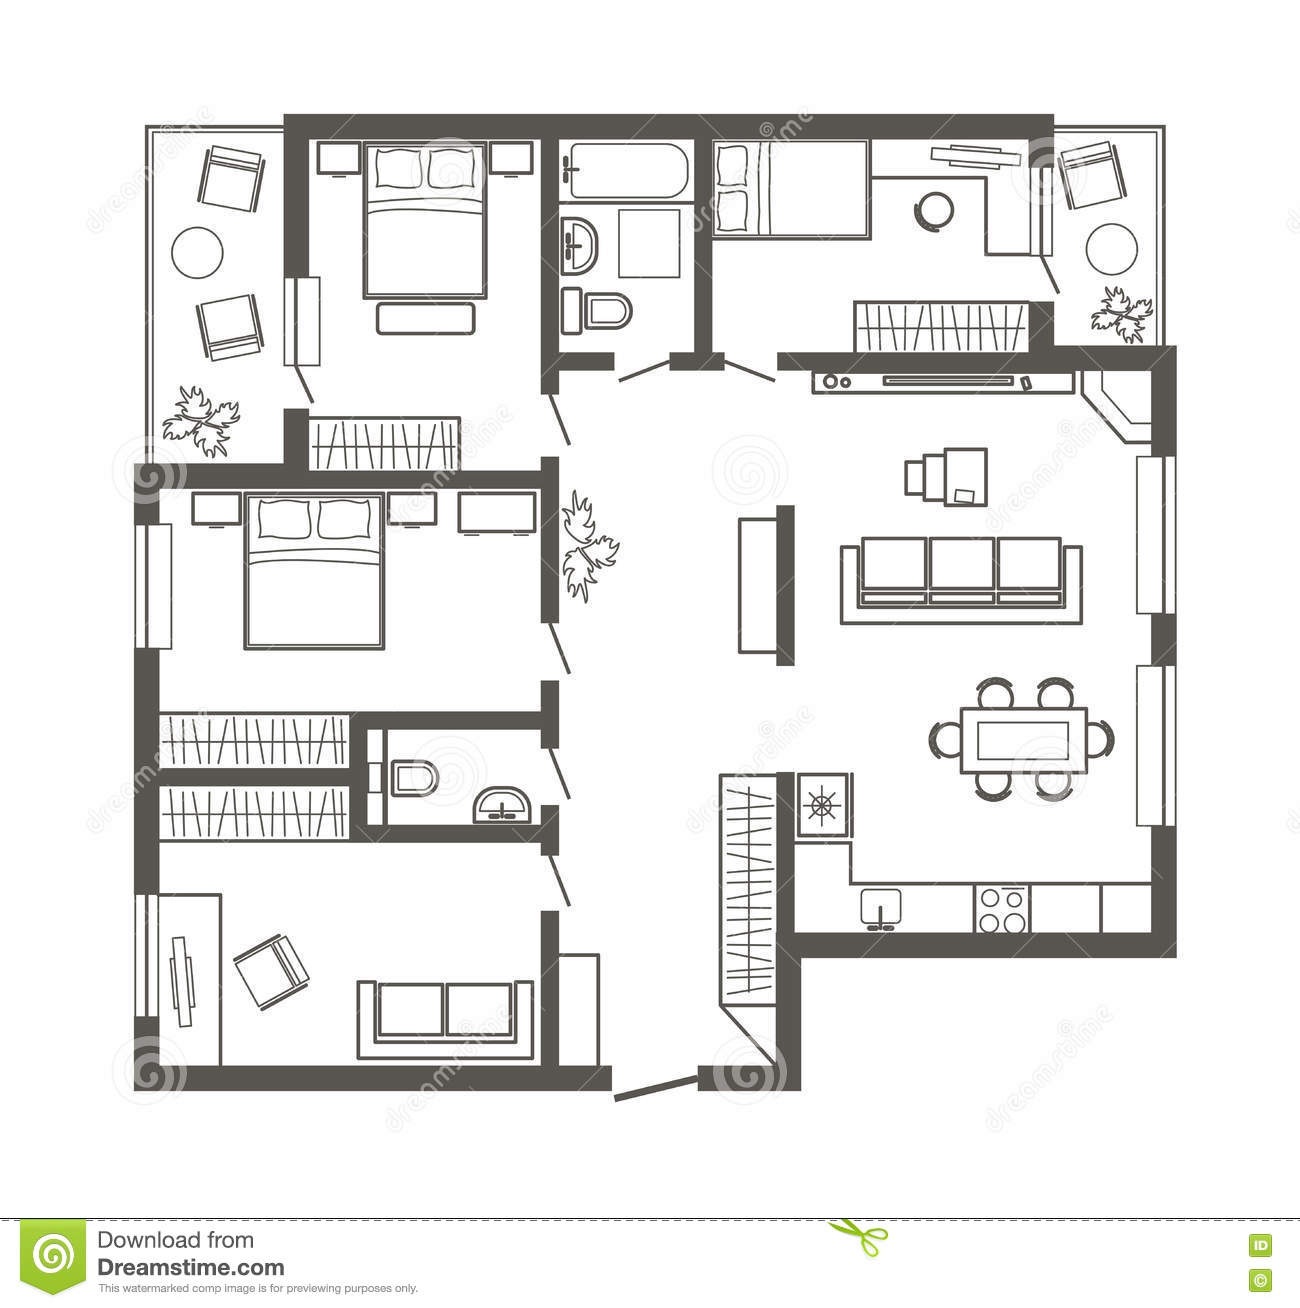 Idea Building further Case Study 1 2247403 also Buildings We Love Sydney Opera House likewise Bedroom Sketch Plan together with Osha Handrail Guardrail Specifications Cad Drawing Thompson Standard Stair Railing Height. on house building plans